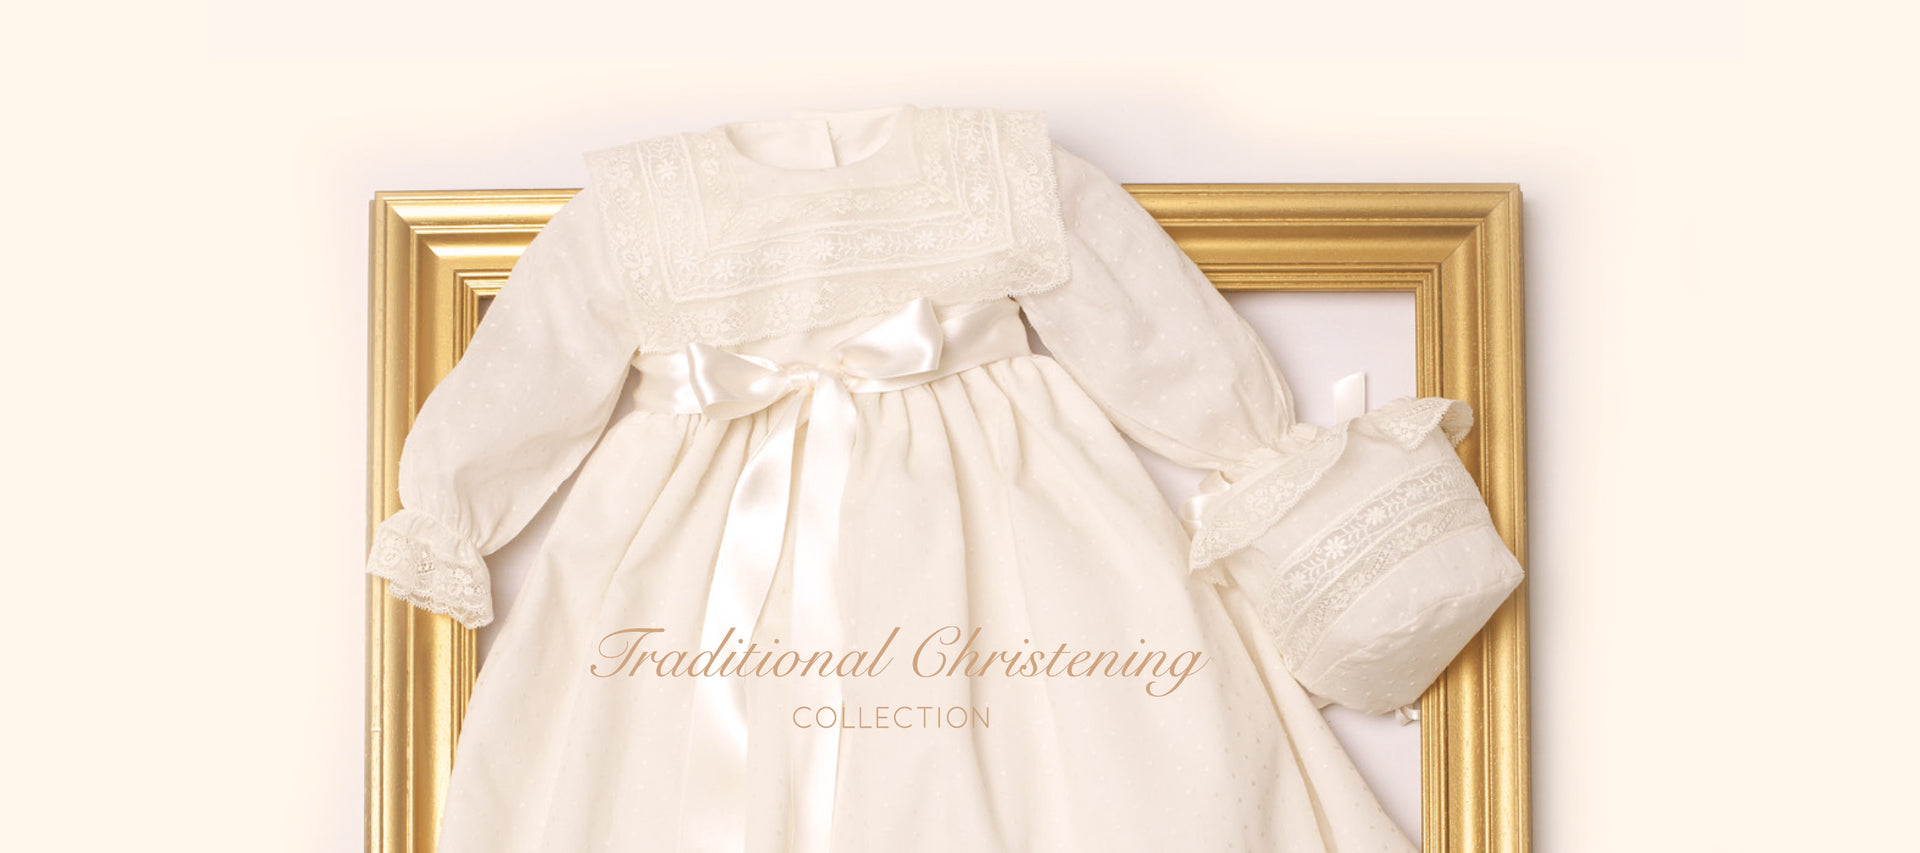 837fcb229597 Traditional Children s Clothing